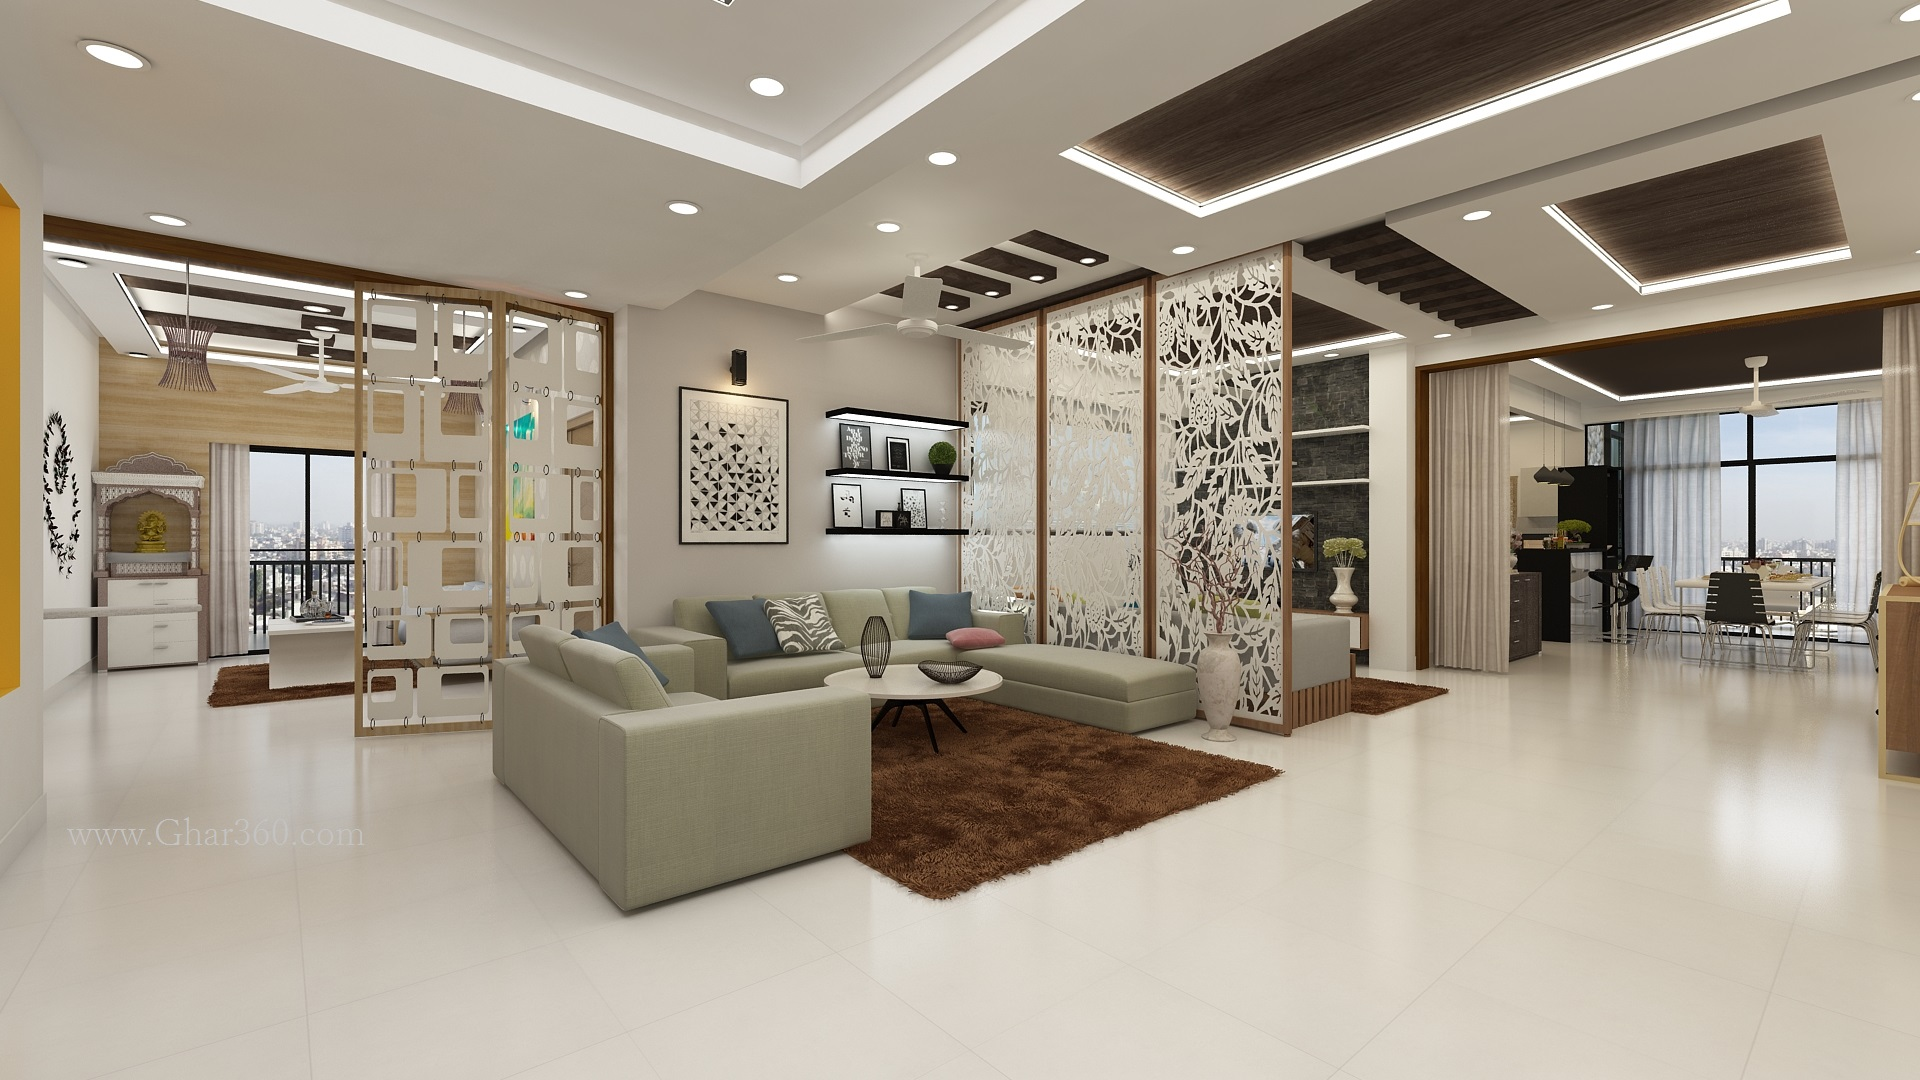 Luxury interior design by ghar360 best interior design for Best names for interior designing firm